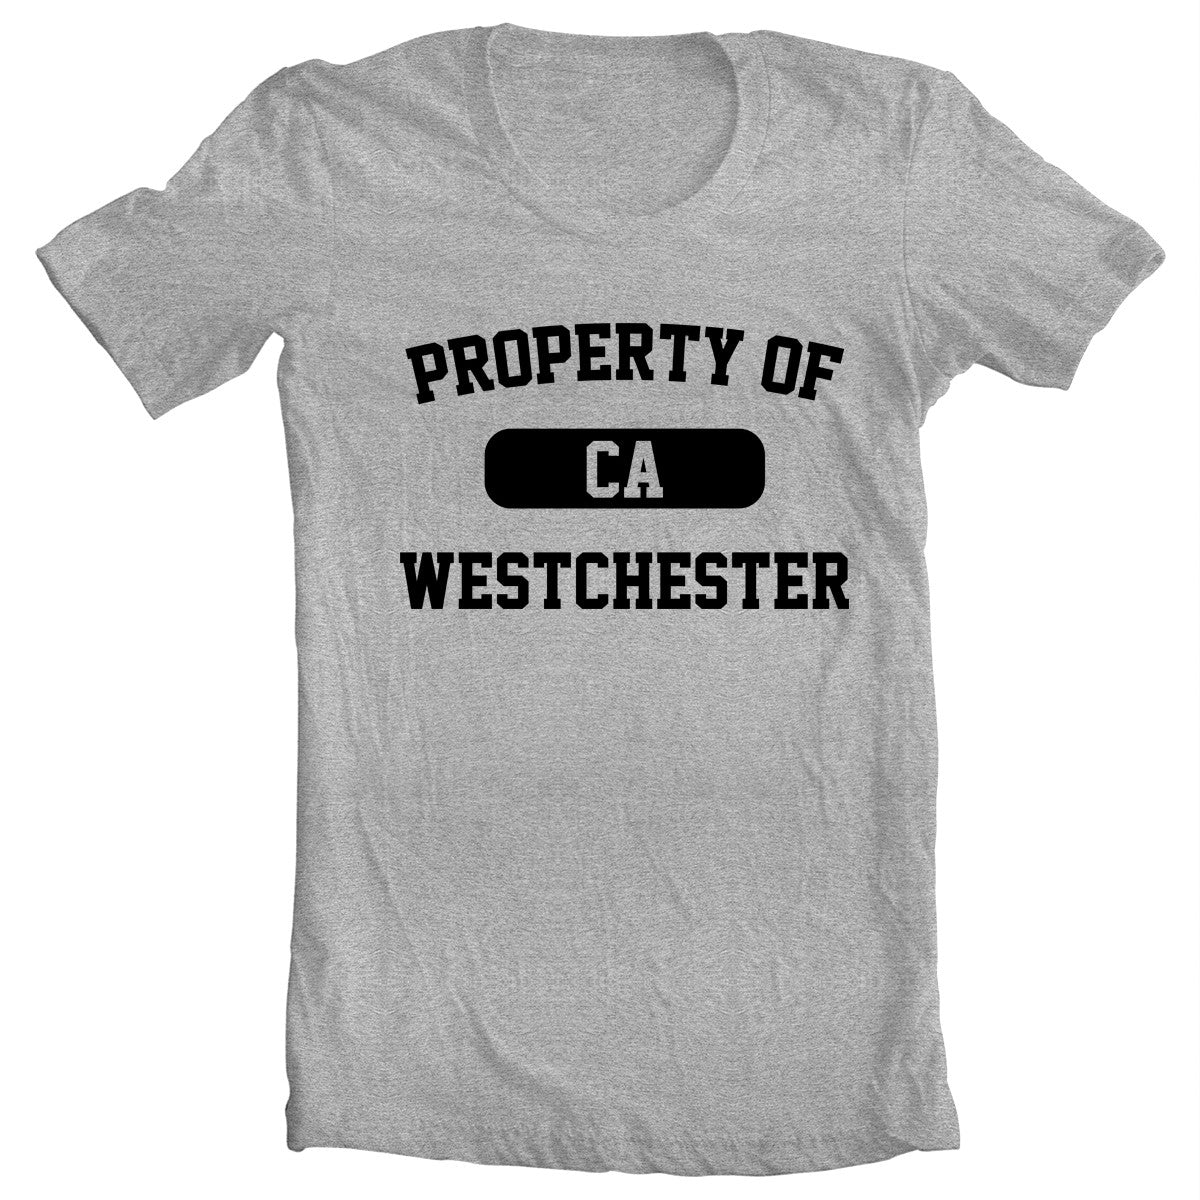 Property of Westchester t-shirt